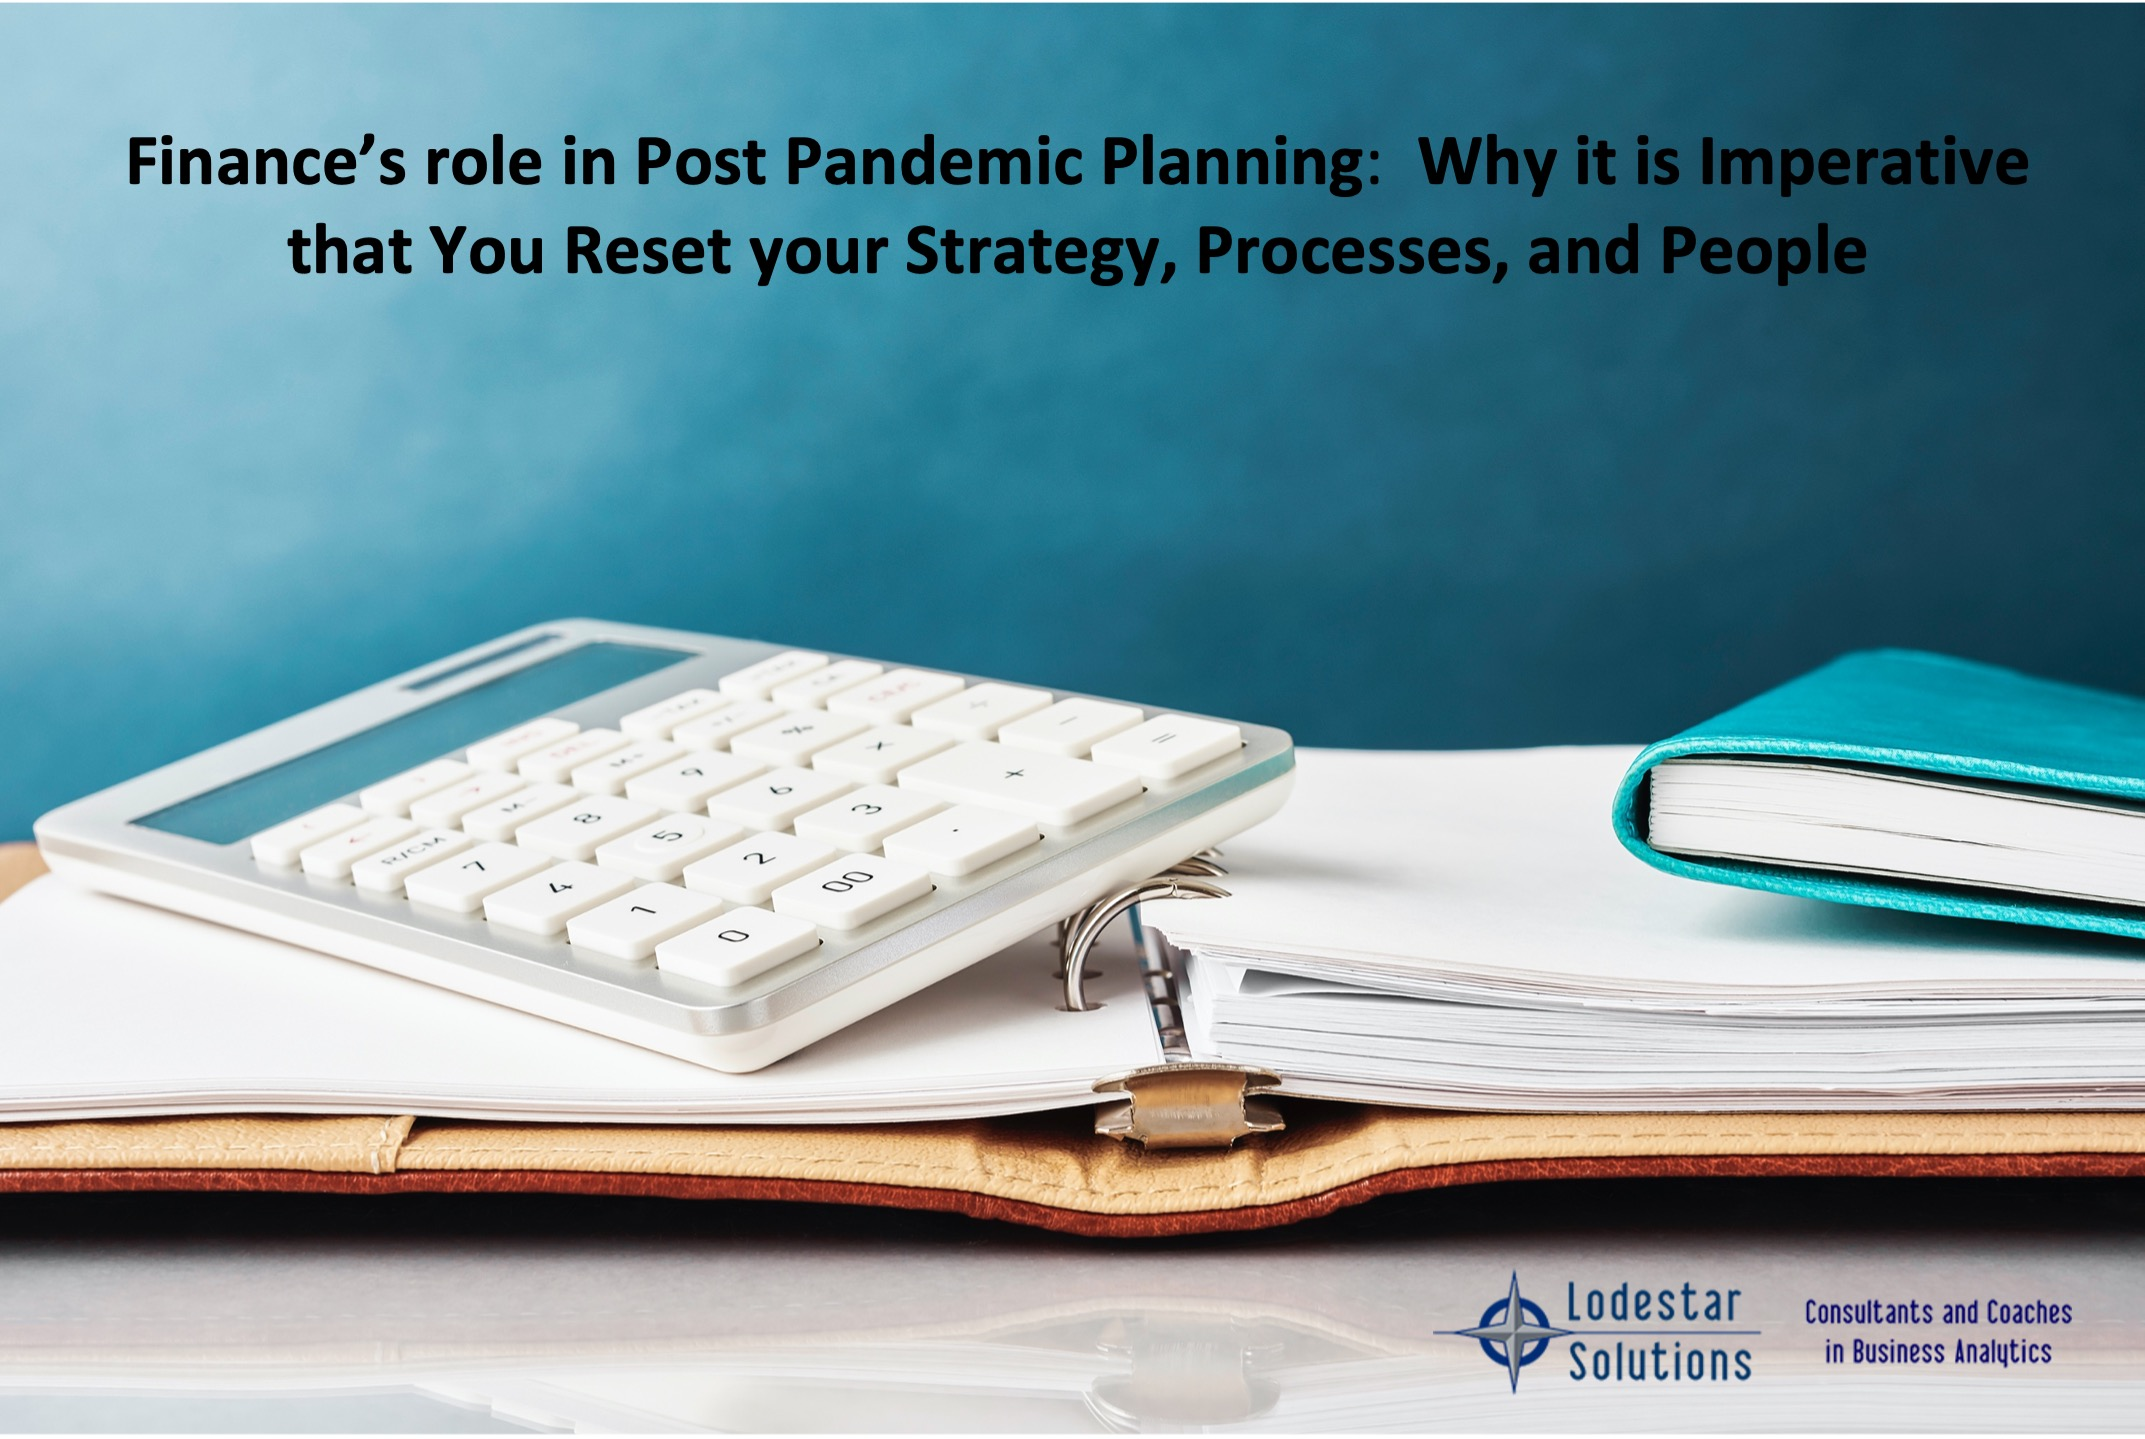 Finance's role in Post Pandemic Planning- Why it is Imperative that You Reset your Strategy, Processes, and People